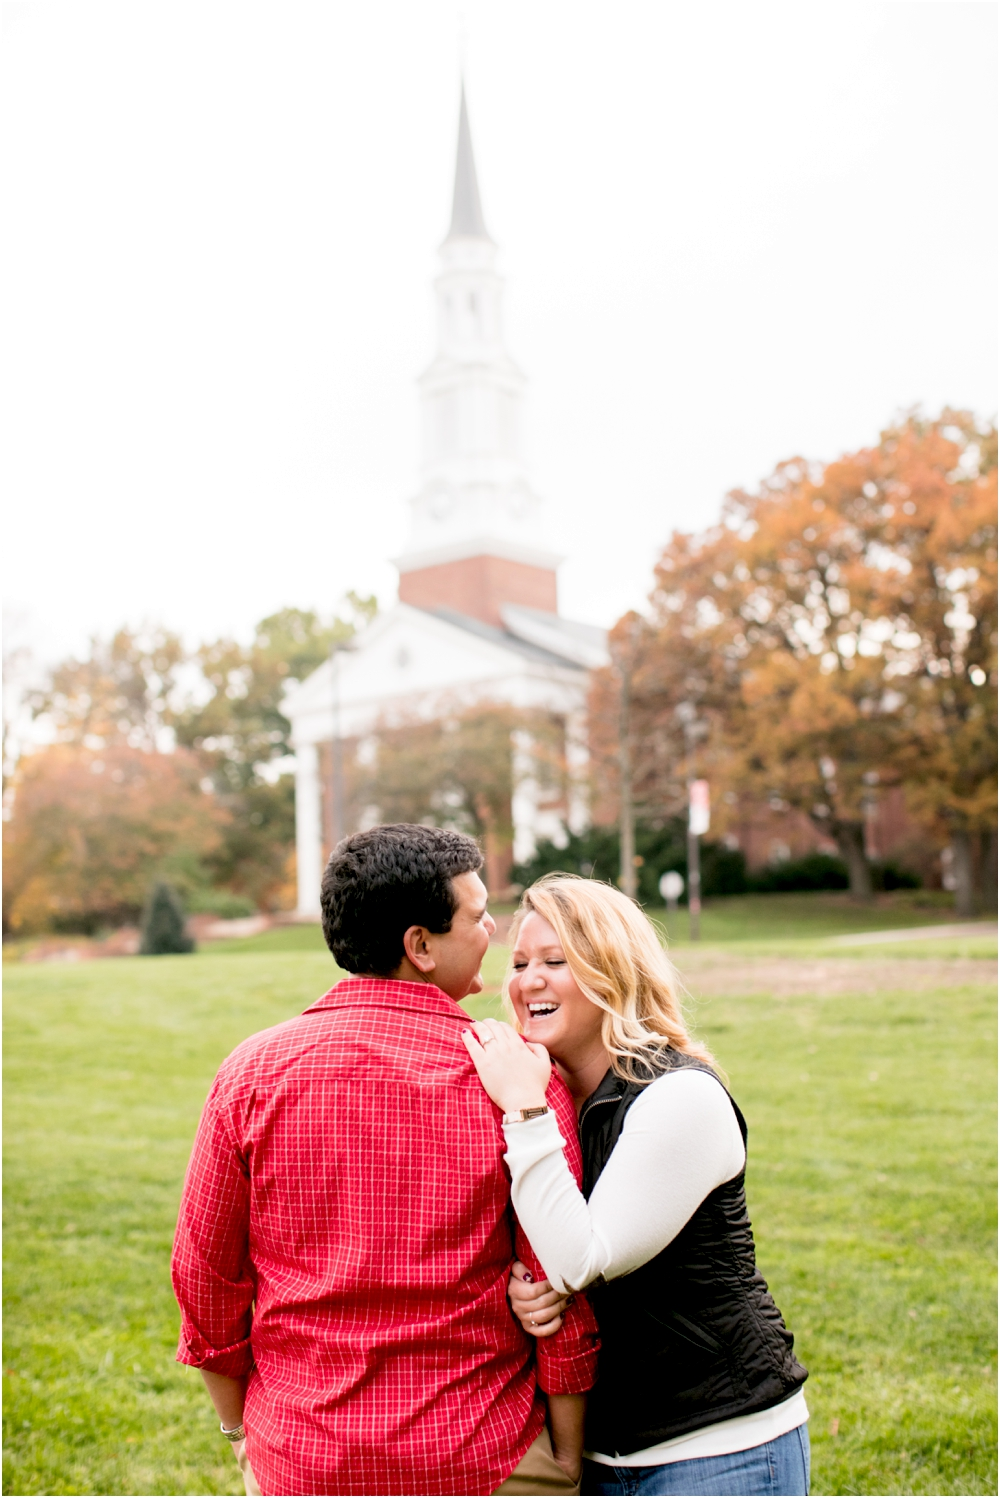 torie chris university of maryland engagement session living radiant photography_0028.jpg